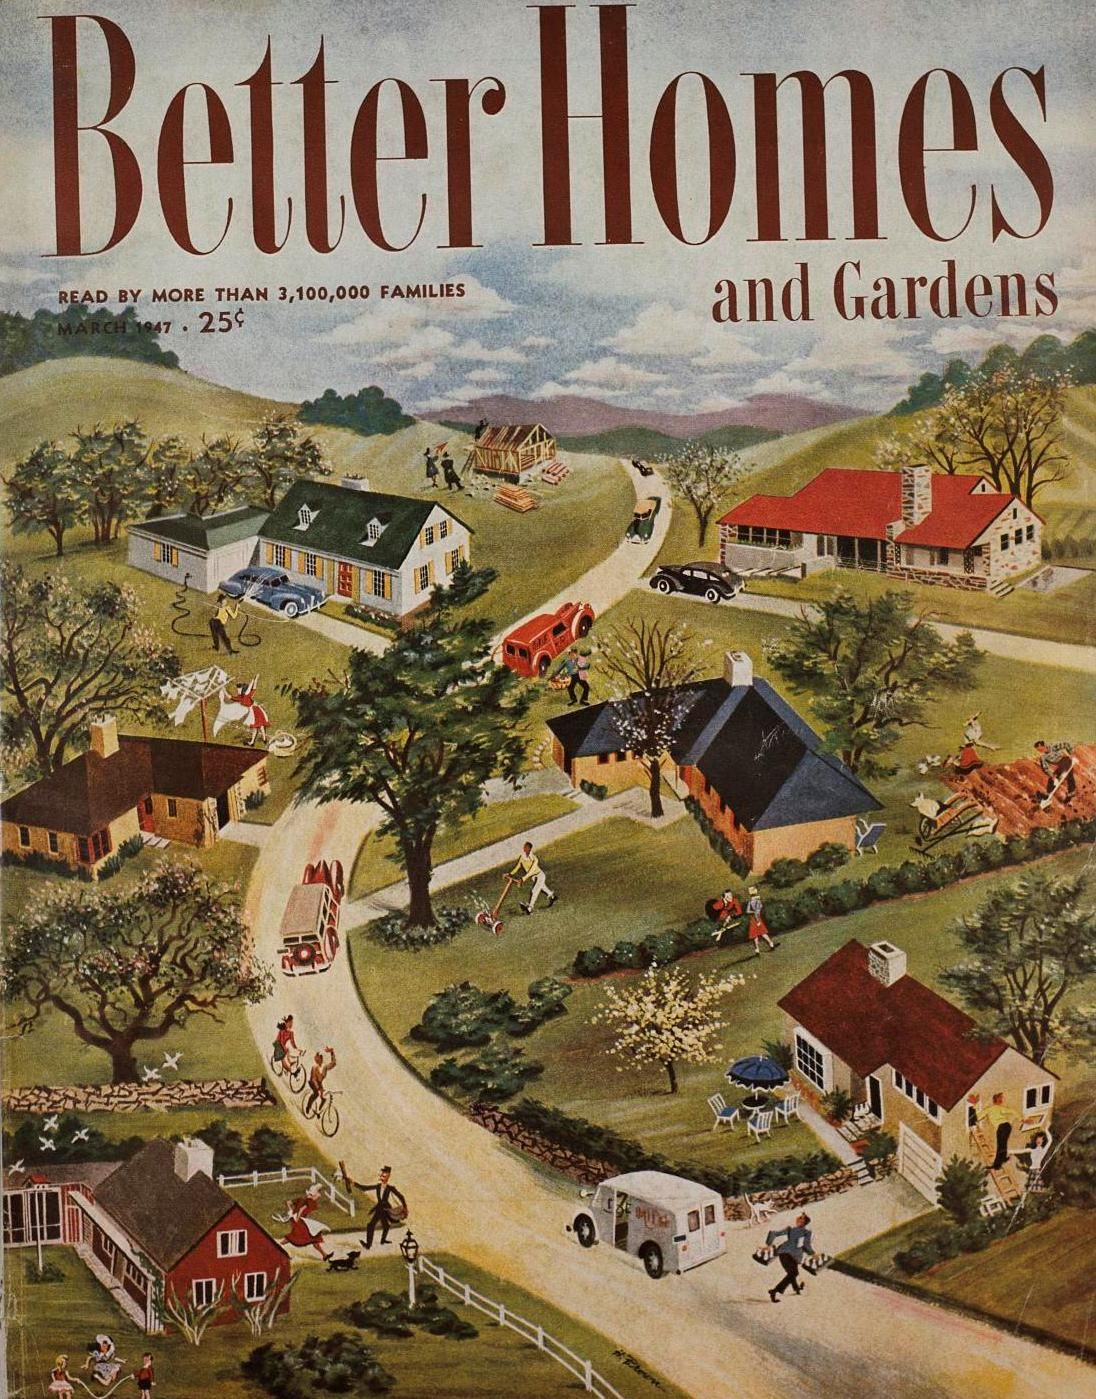 Vintage Bhg Covers March1947 A Special Memory For Me Since This Is The Issue My Mother Would